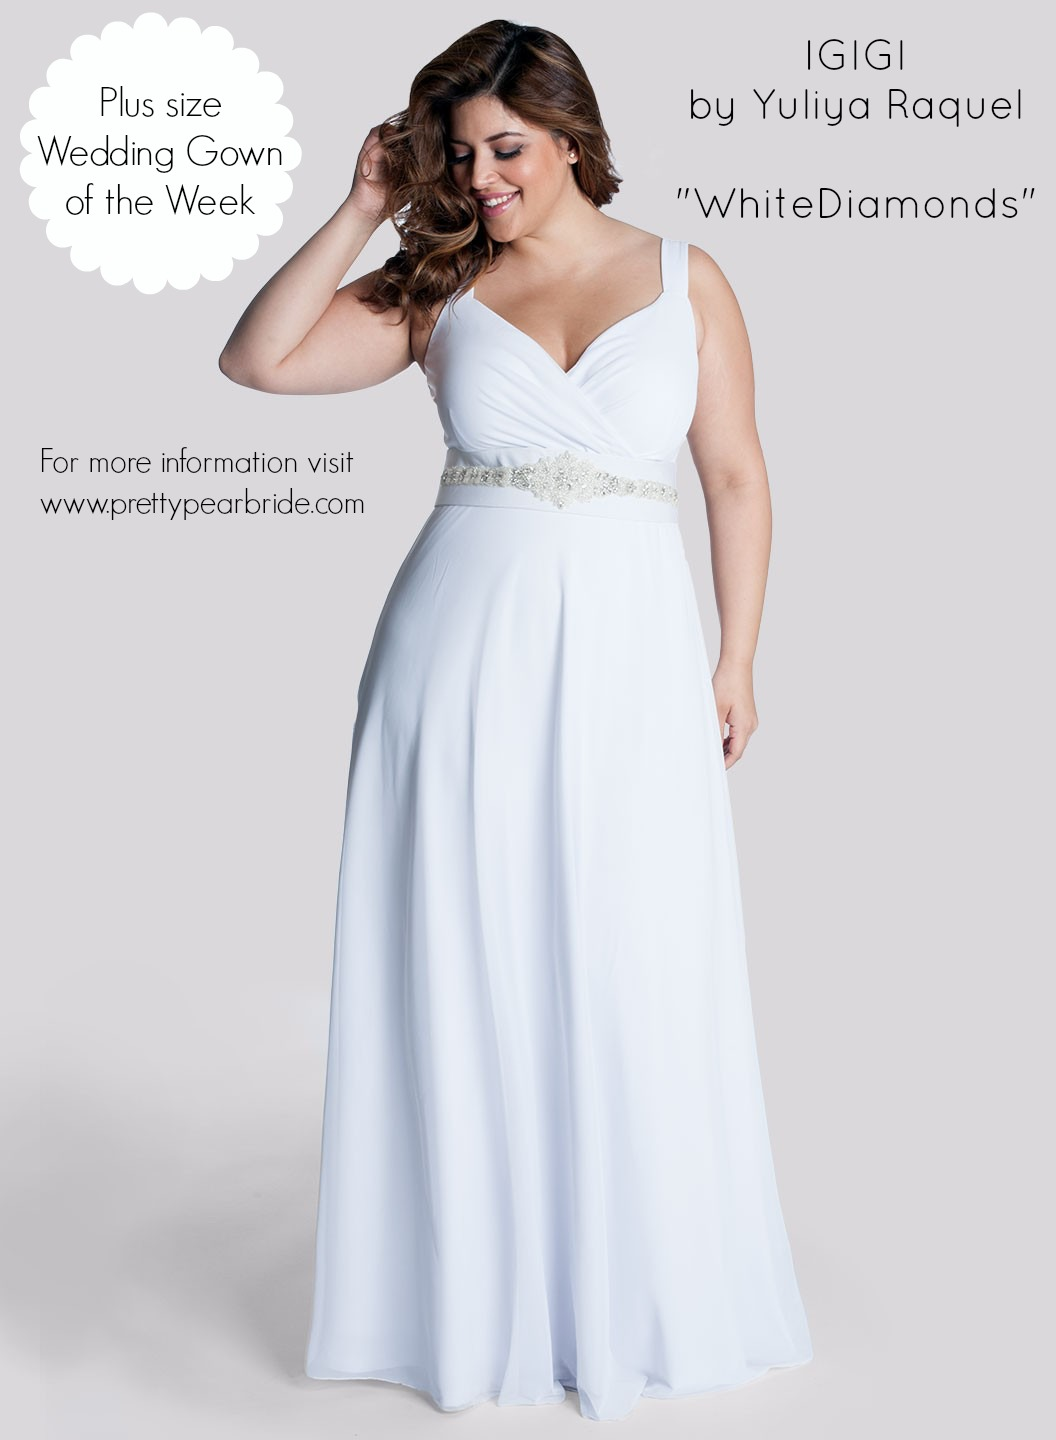 s plus+size+wedding+dress+of+the+week plus sized wedding dresses Plus Size Wedding Dress of the Week IGIGI White Diamonds